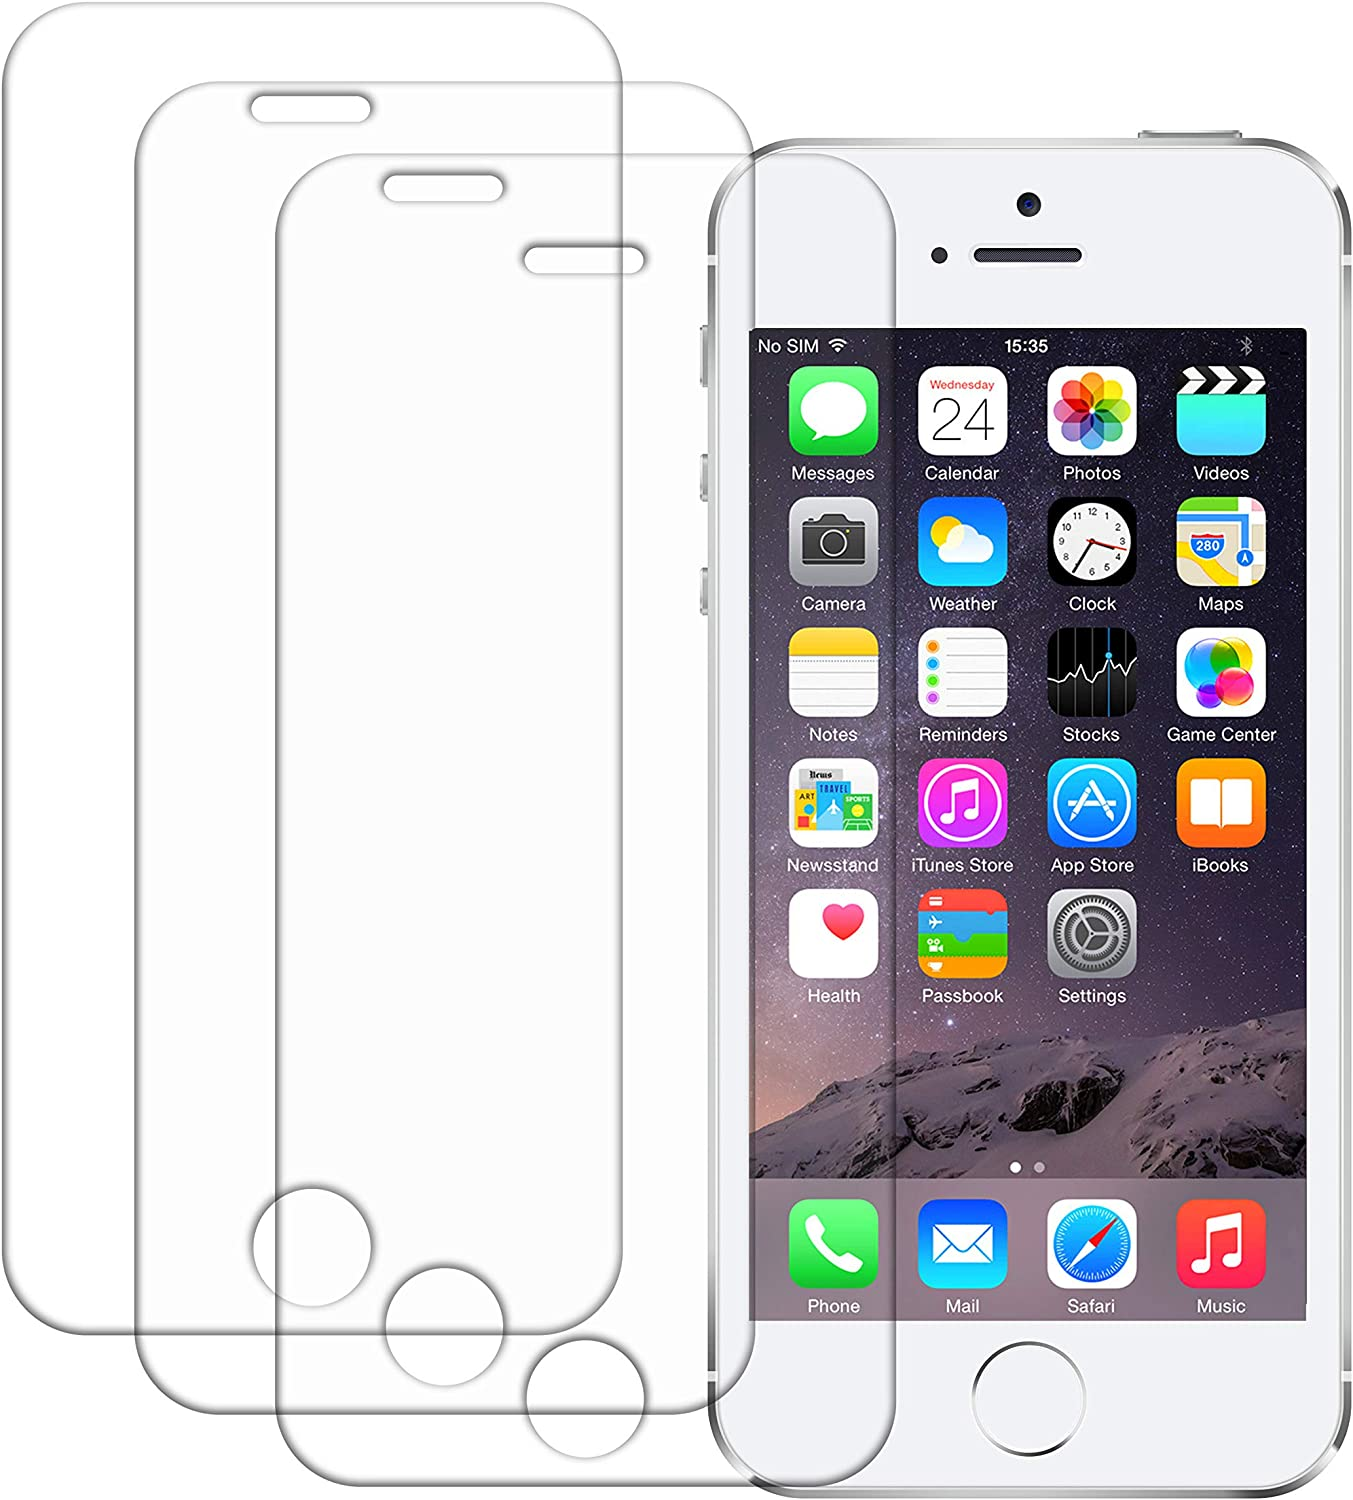 3 Pack iPhone 5s Screen Protector, Wisdompro 0.3mm Tempered Glass Screen Protectors for 4 inch Apple iPhone SE 1st Generation, iPhone 5, iPhone 5s, iPhone 5c